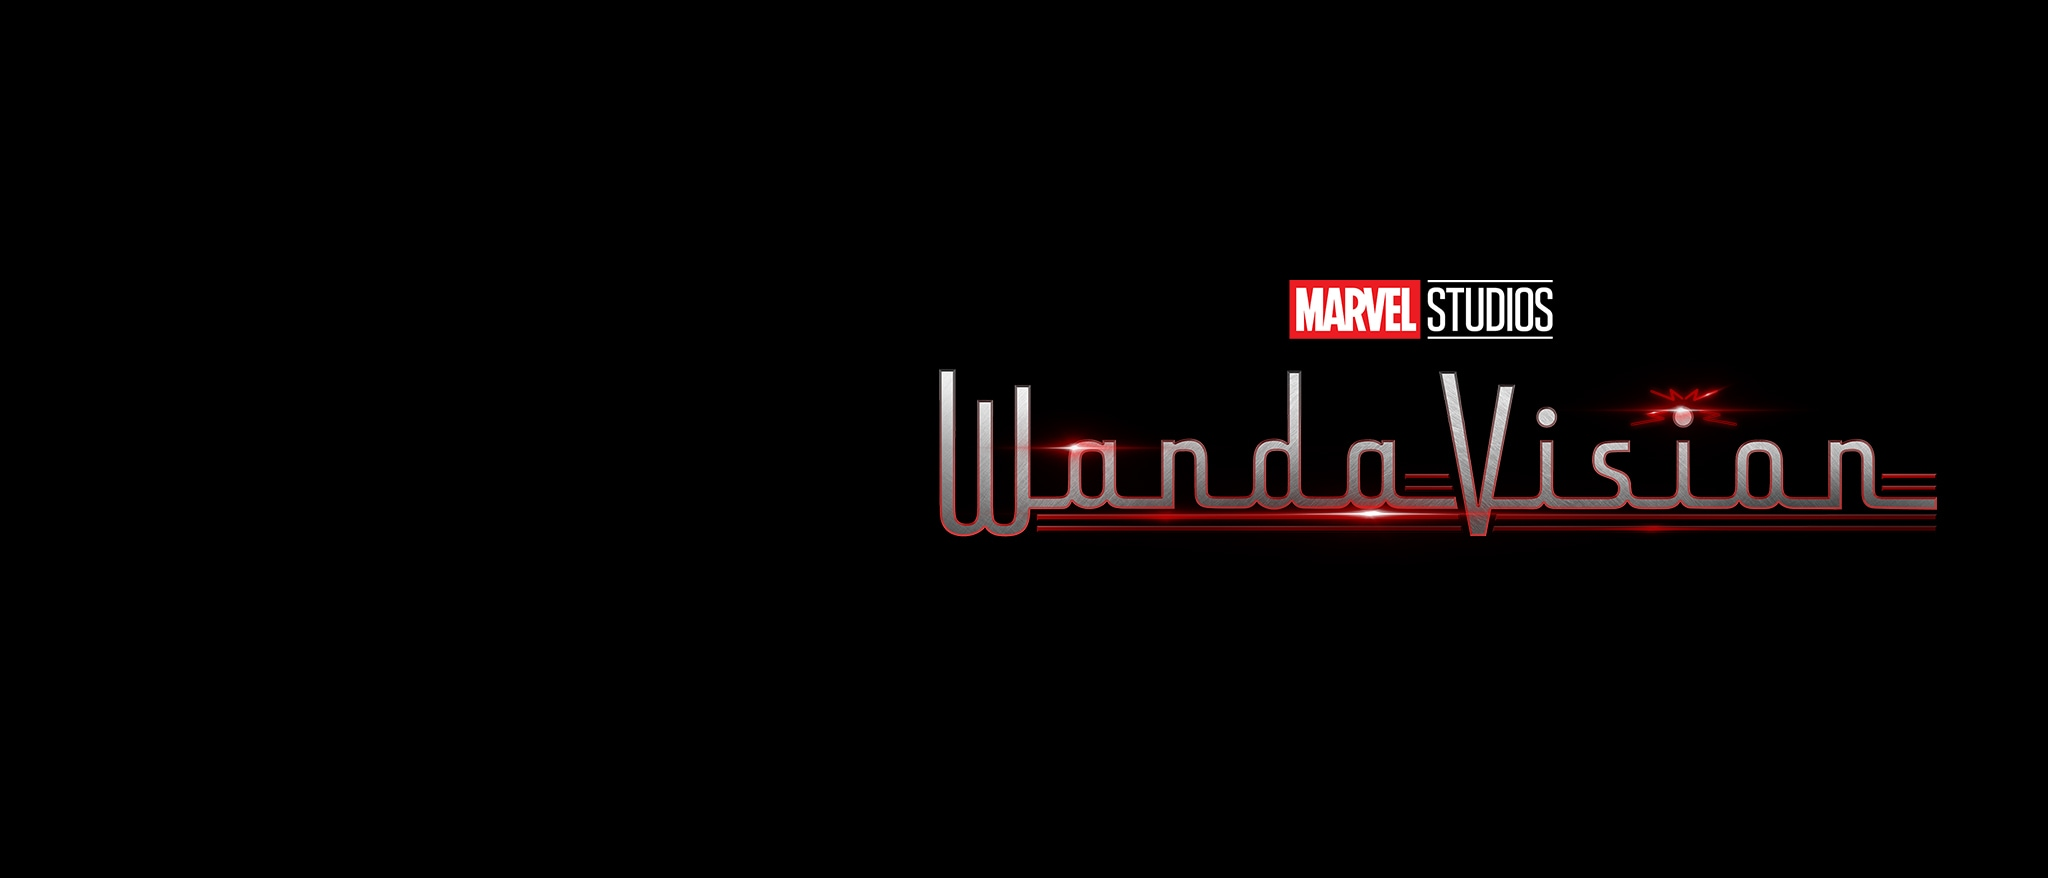 Hero - Disney+ - WandaVision Trailer Disney+